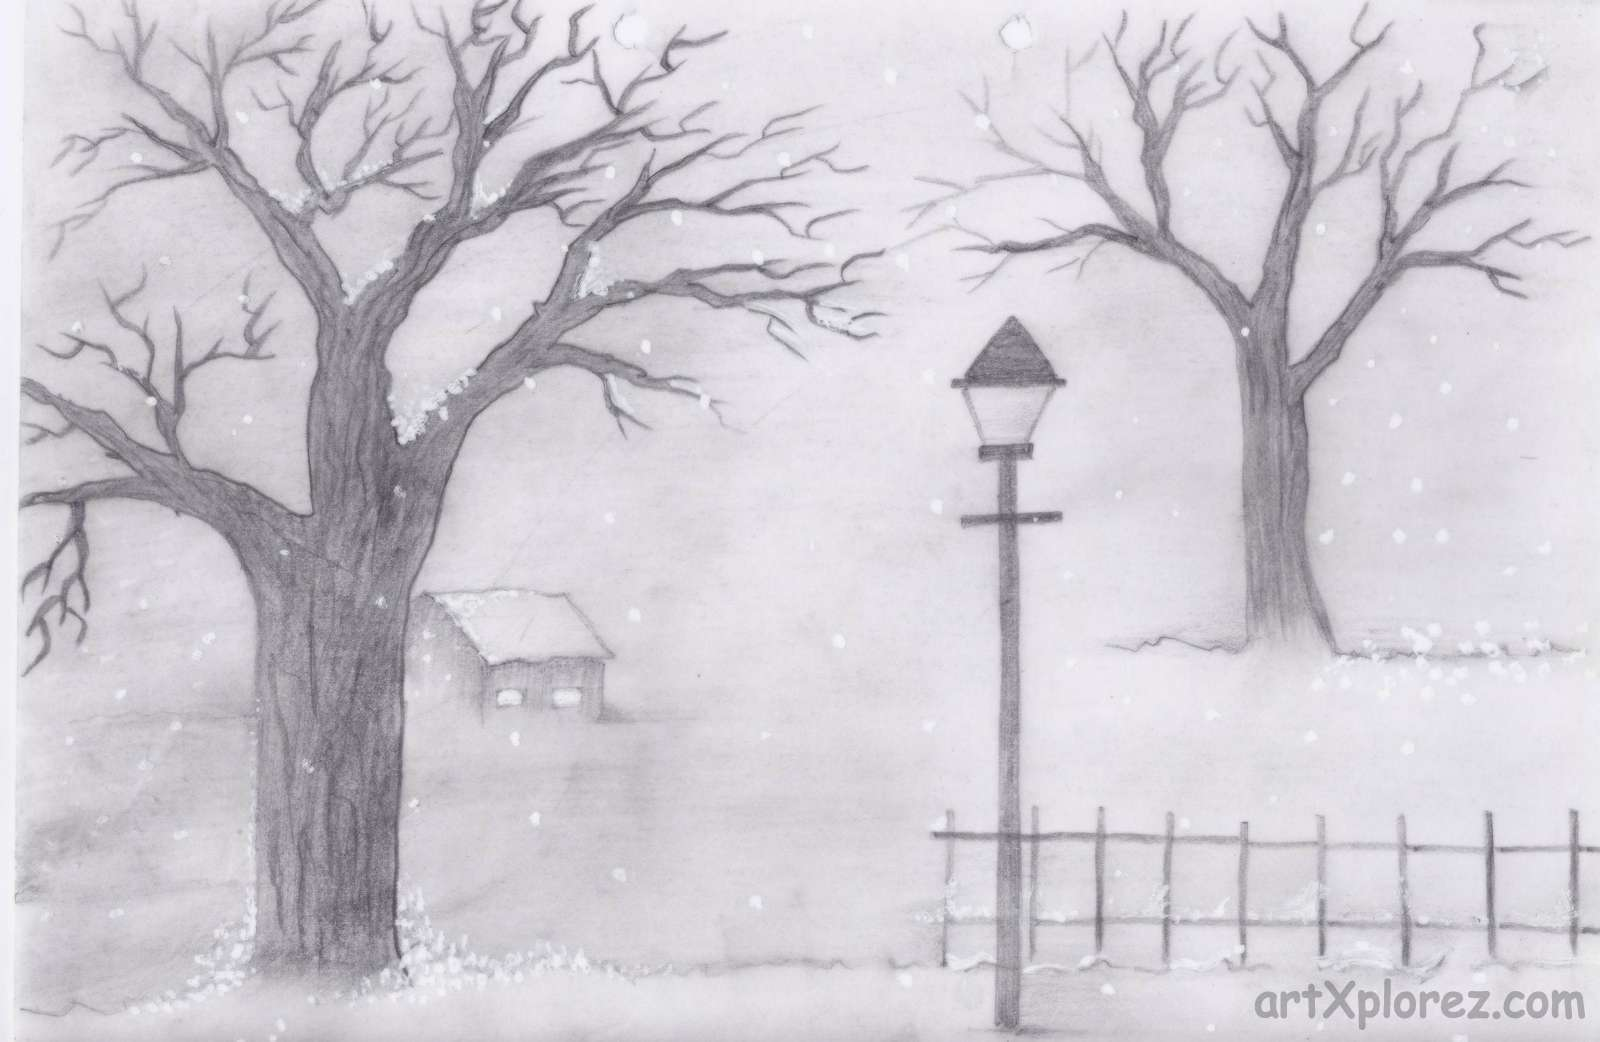 Drawn scenery shading Chilled Landscapes Shading icy weather